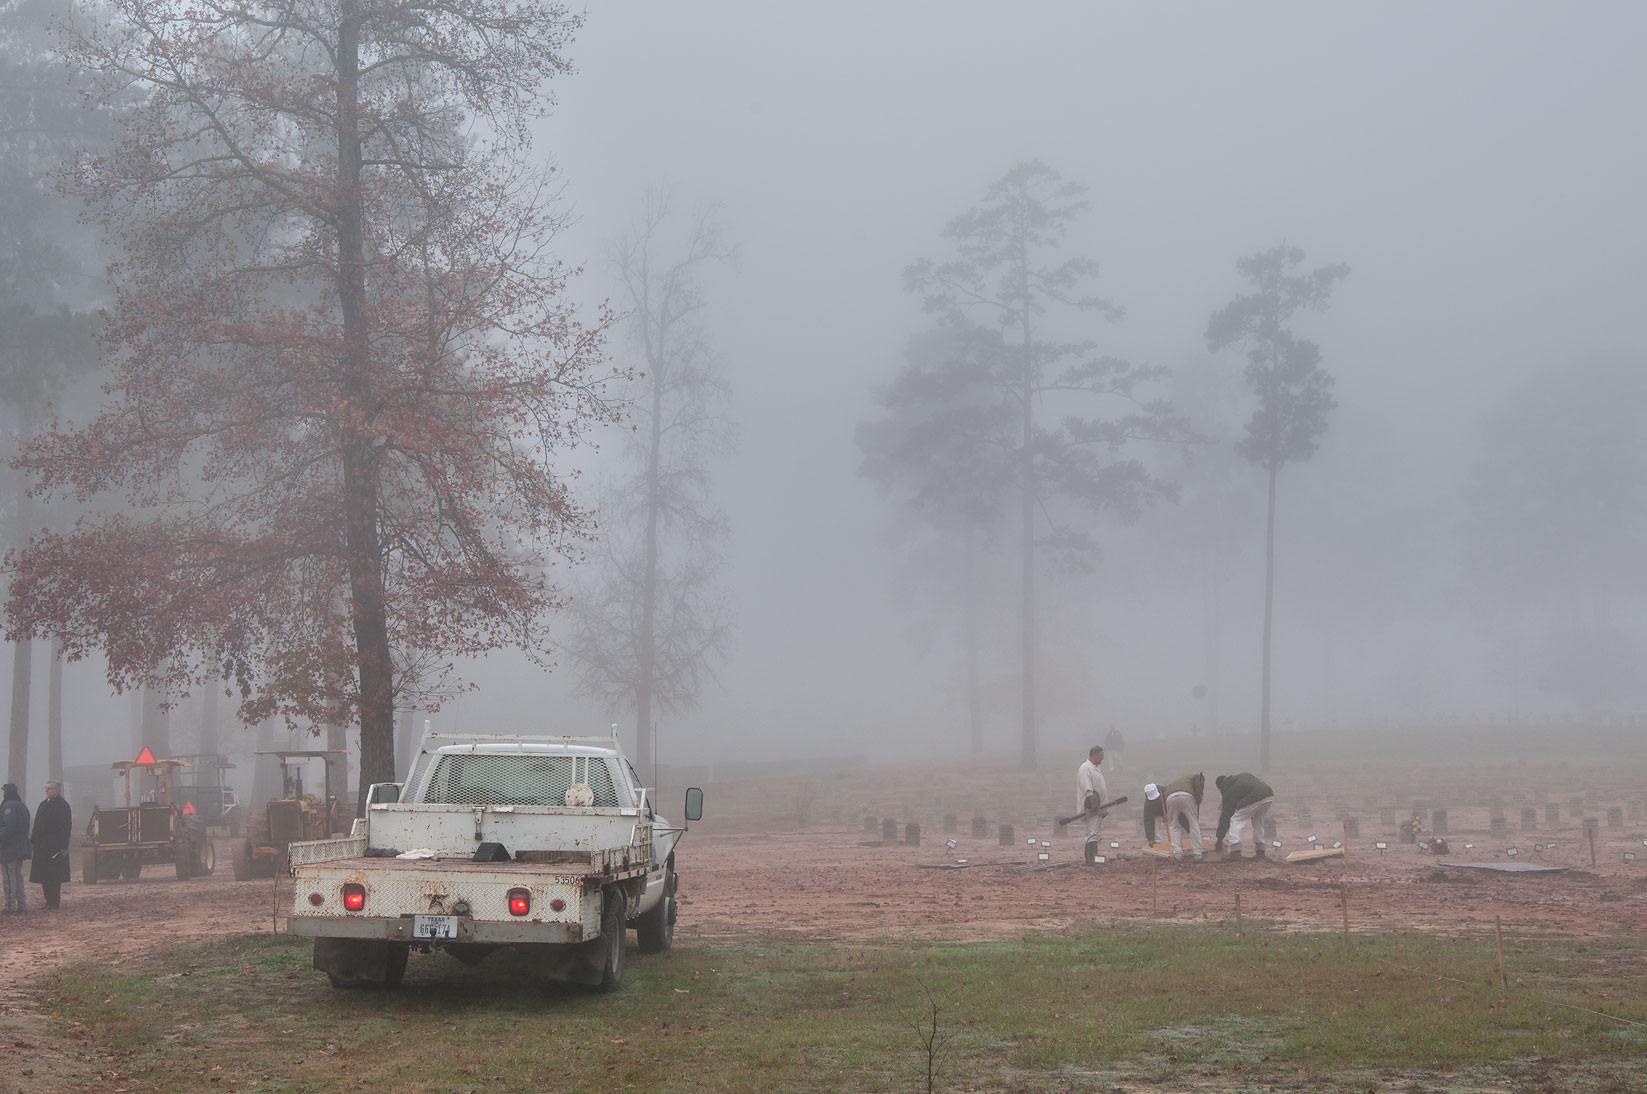 Group of inmates burying deceased prisoners in...Cemetery in fog. Huntsville, Texas